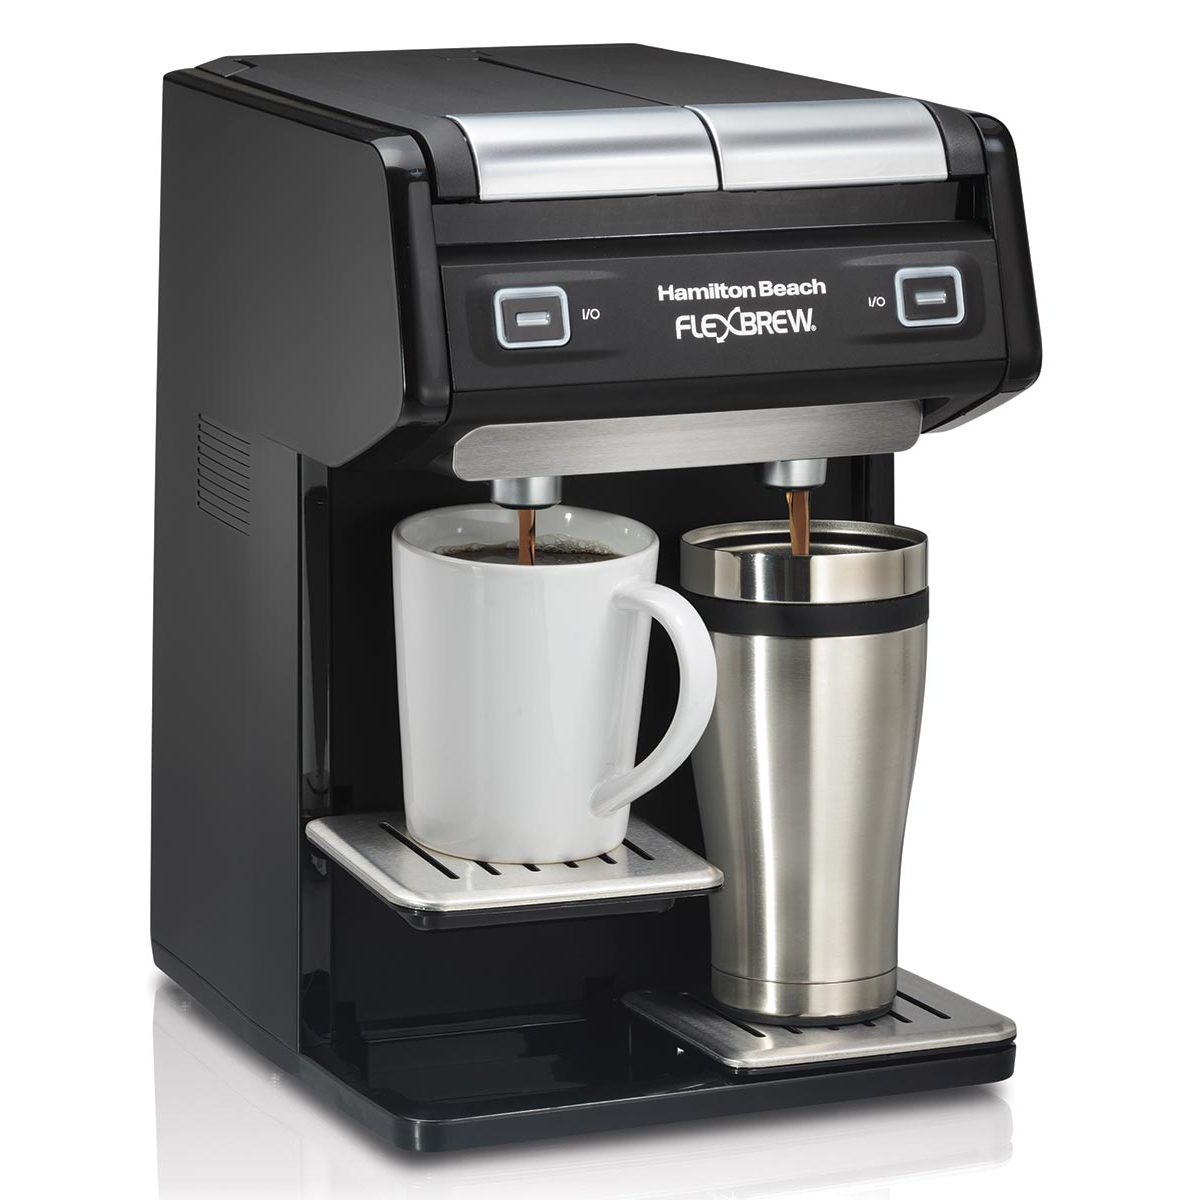 FlexBrew® Coffee Maker Dual Single-Serve, Black (49998)